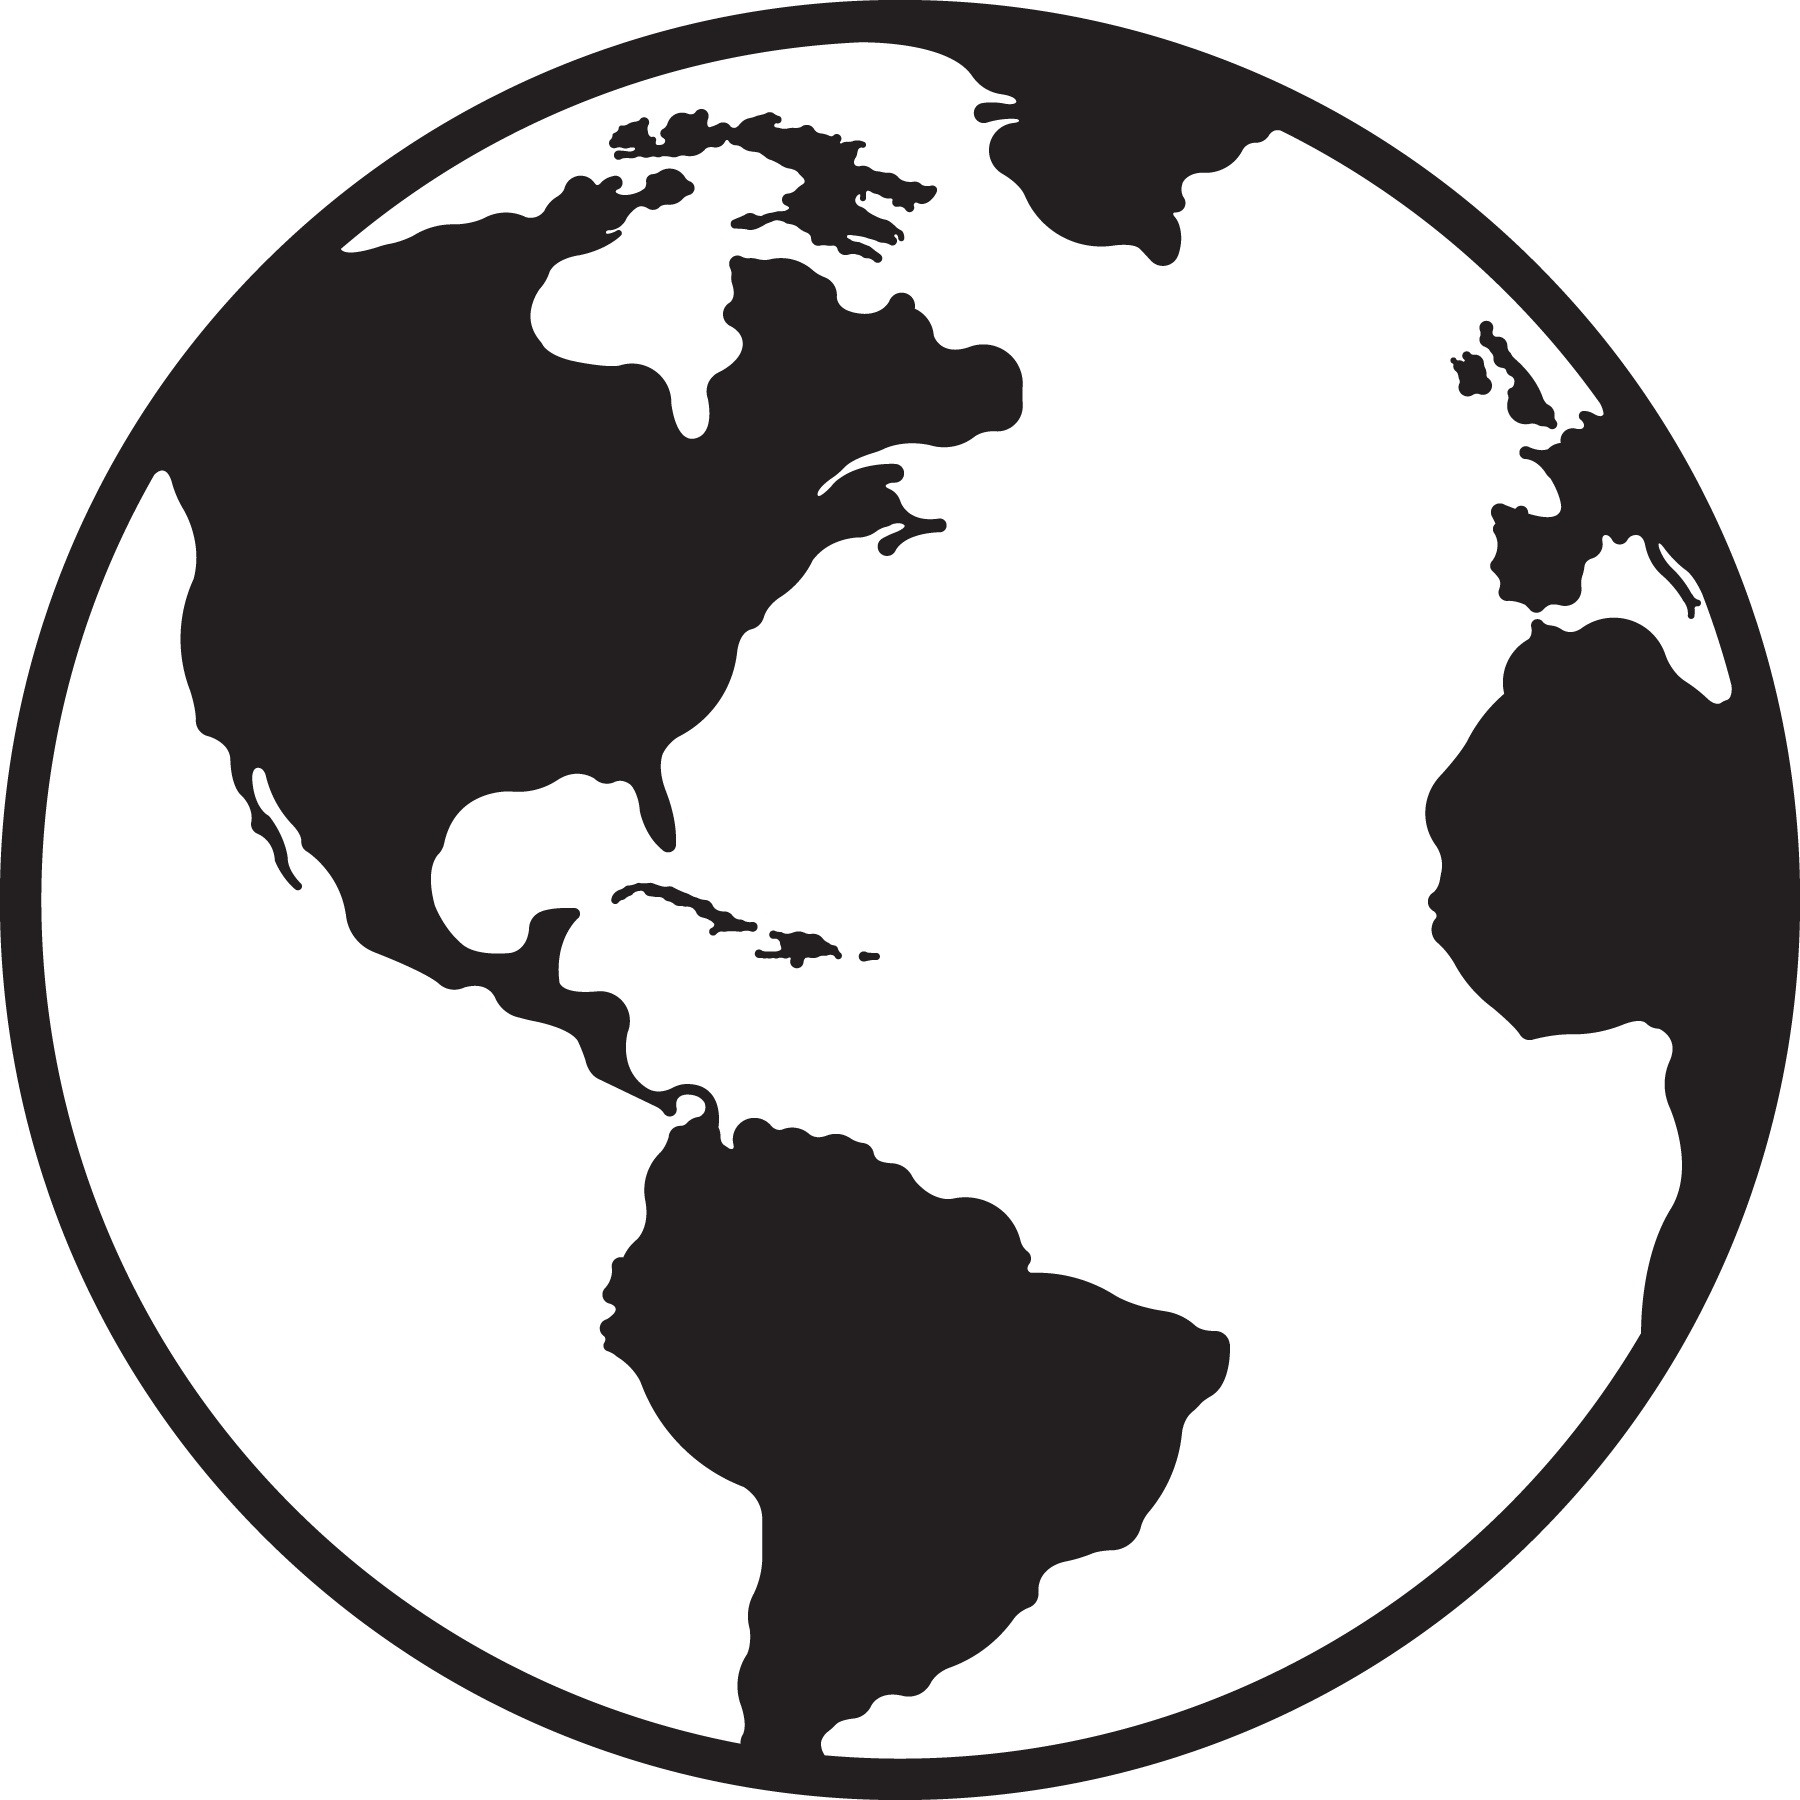 Earth clipart black and white Awesome Globe Clipart Black And White.